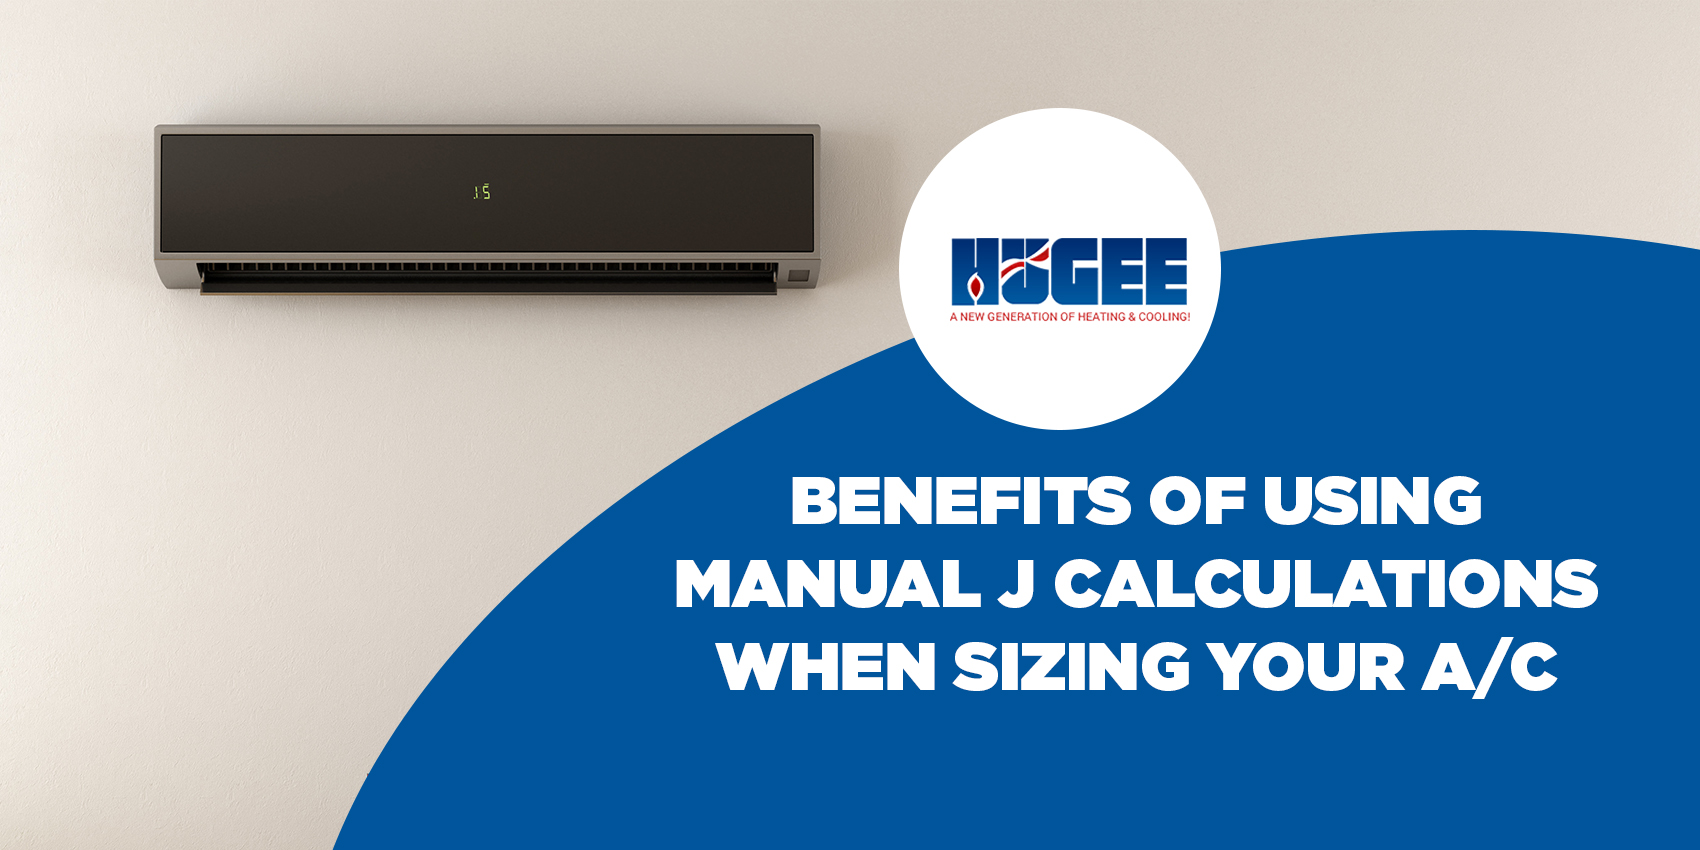 Benefits of Using Manual J Calculations When Sizing Your A/C